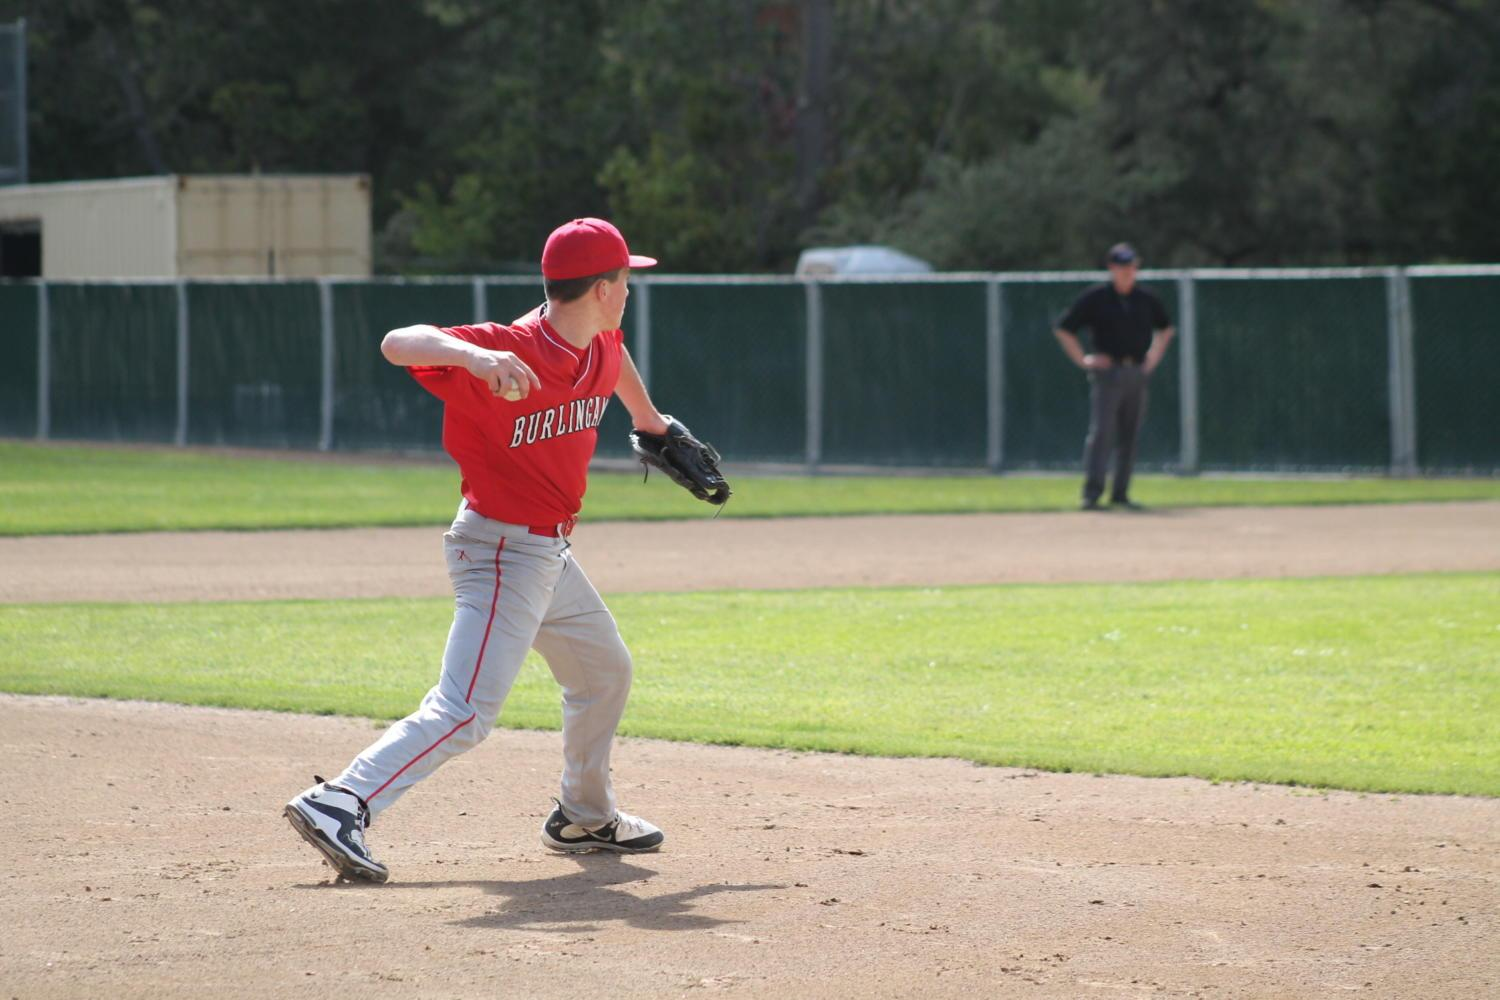 Burlingame sophomore Chase Funkhouser warms up before the game by throwing a ball to first base.